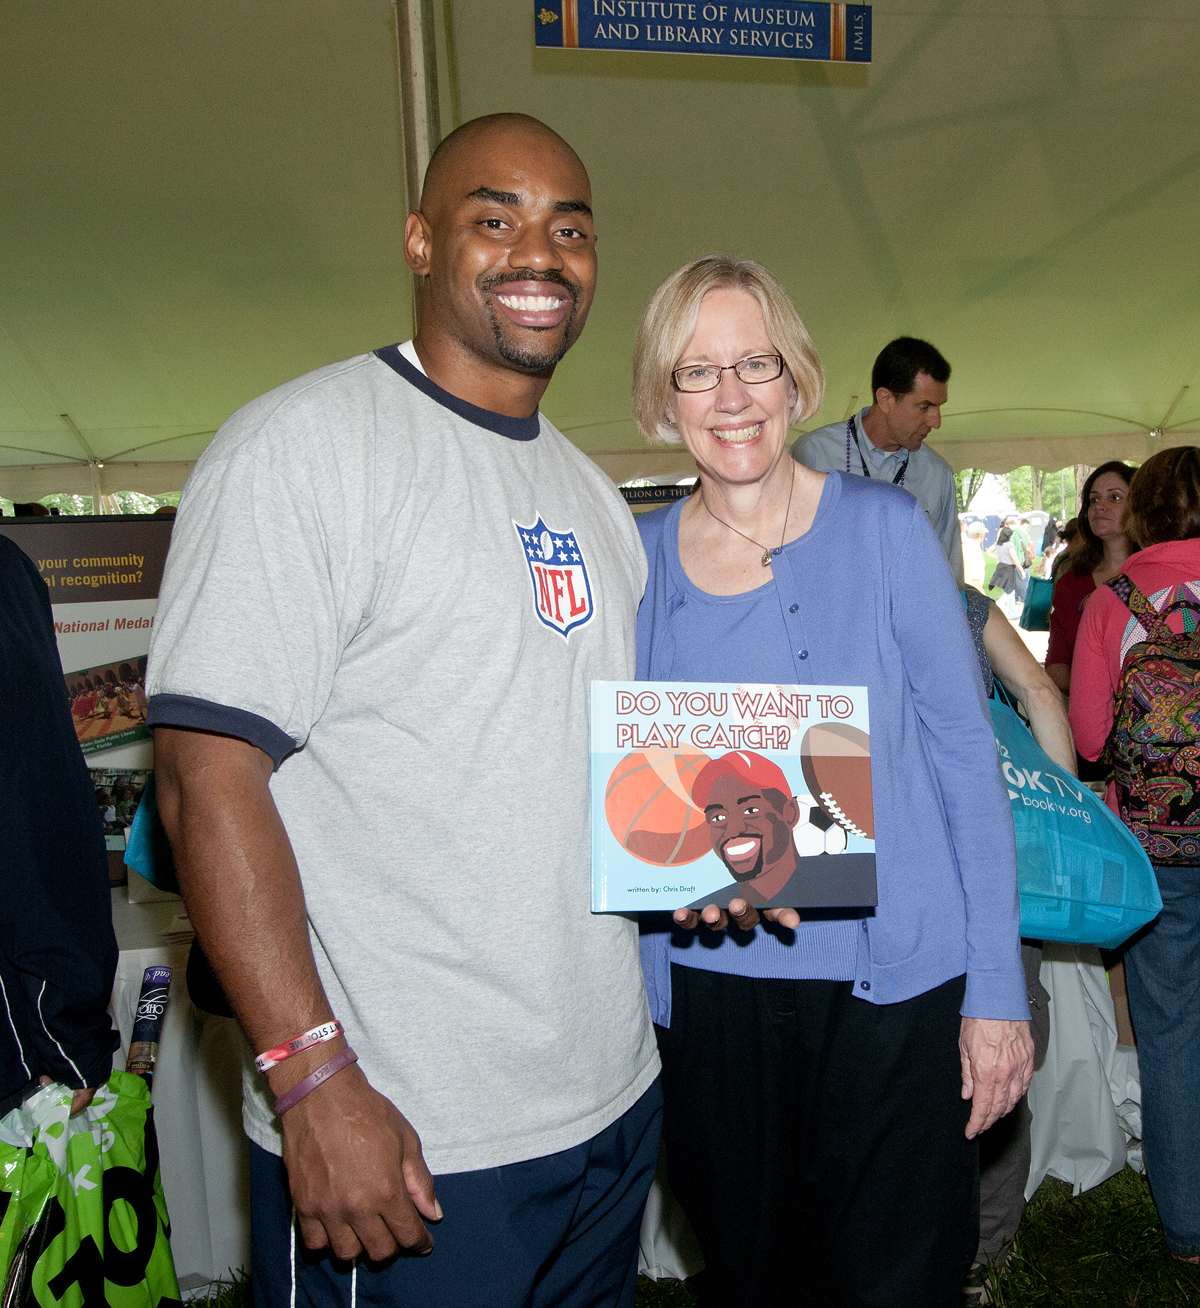 Chris Draft with Susan Hildreth, IMLS Director